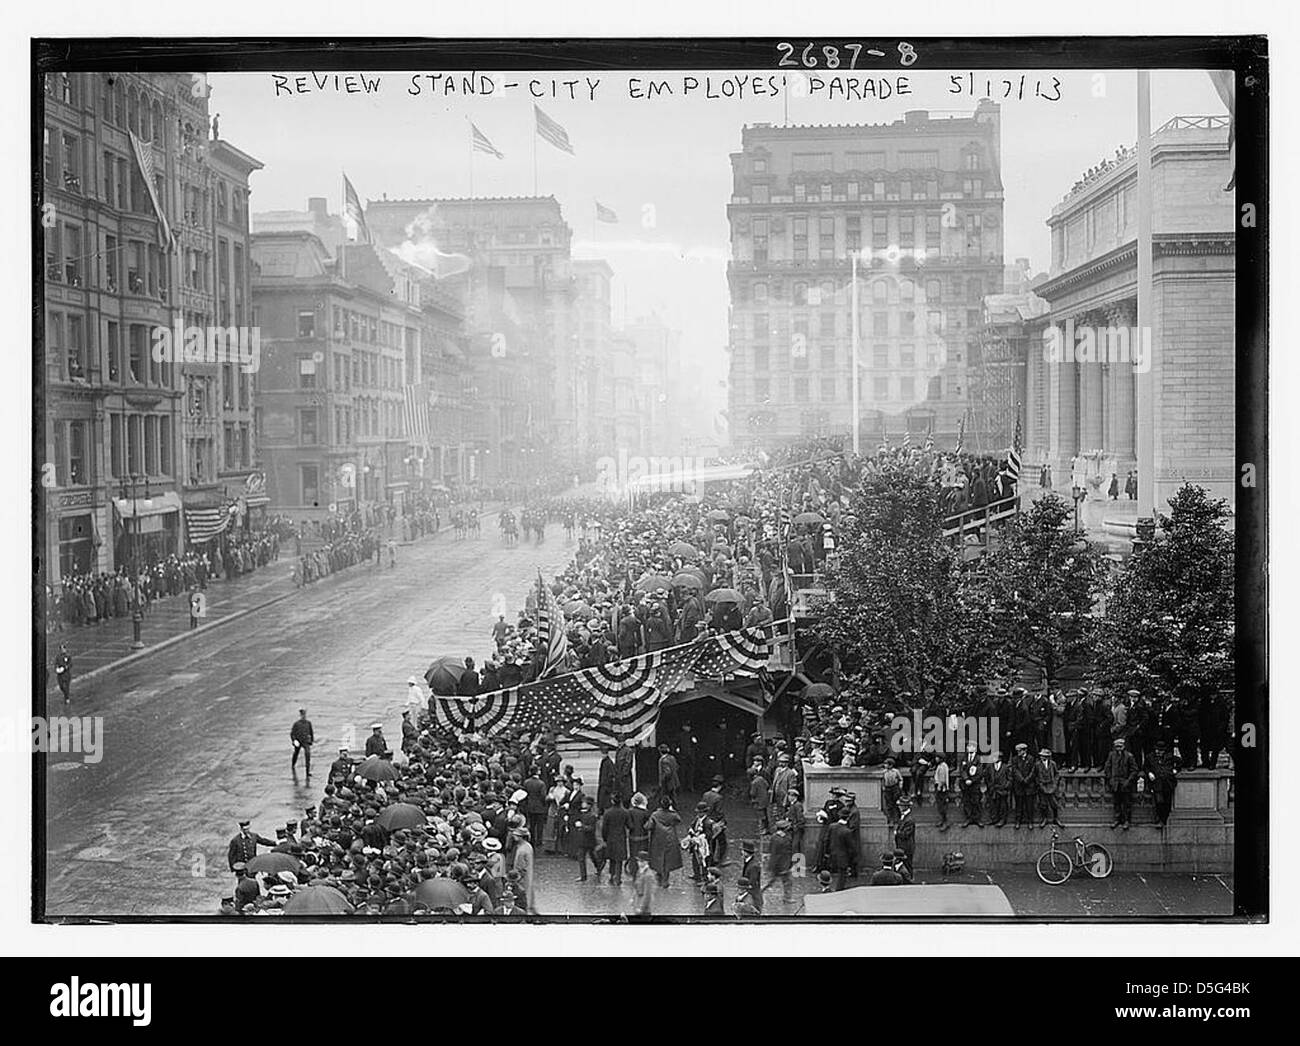 City Employees' parade - Review Stand (LOC) - Stock Image